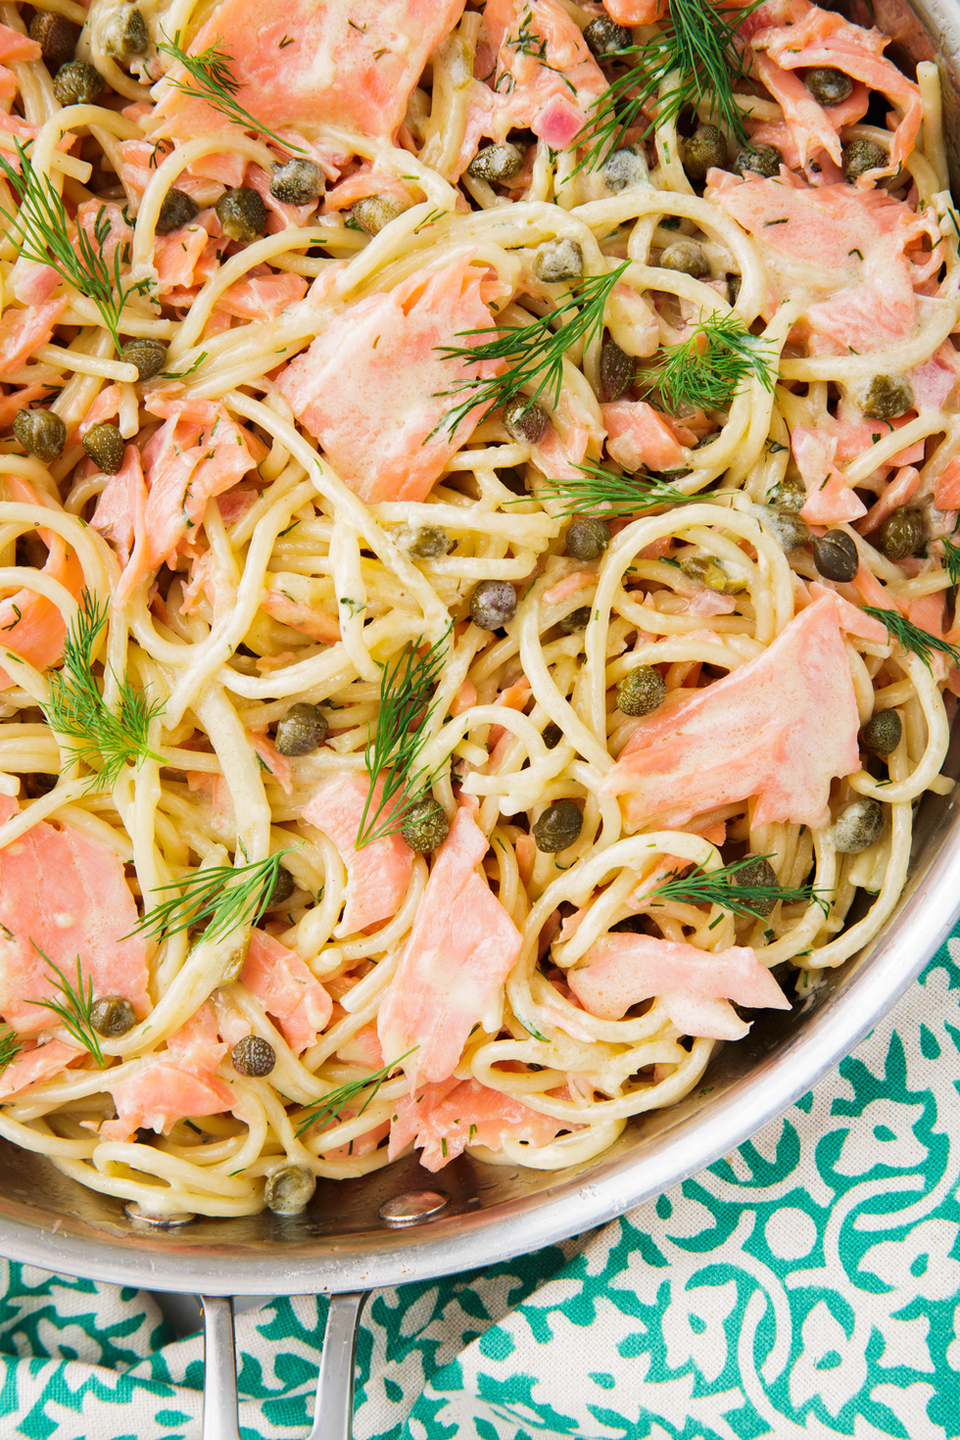 """<p>Sounds super fancy, but so easy to make!</p><p>Get the recipe from <a href=""""https://www.delish.com/cooking/recipe-ideas/a24856400/smoked-salmon-pasta-recipe/"""" rel=""""nofollow noopener"""" target=""""_blank"""" data-ylk=""""slk:Delish"""" class=""""link rapid-noclick-resp"""">Delish</a>. </p>"""